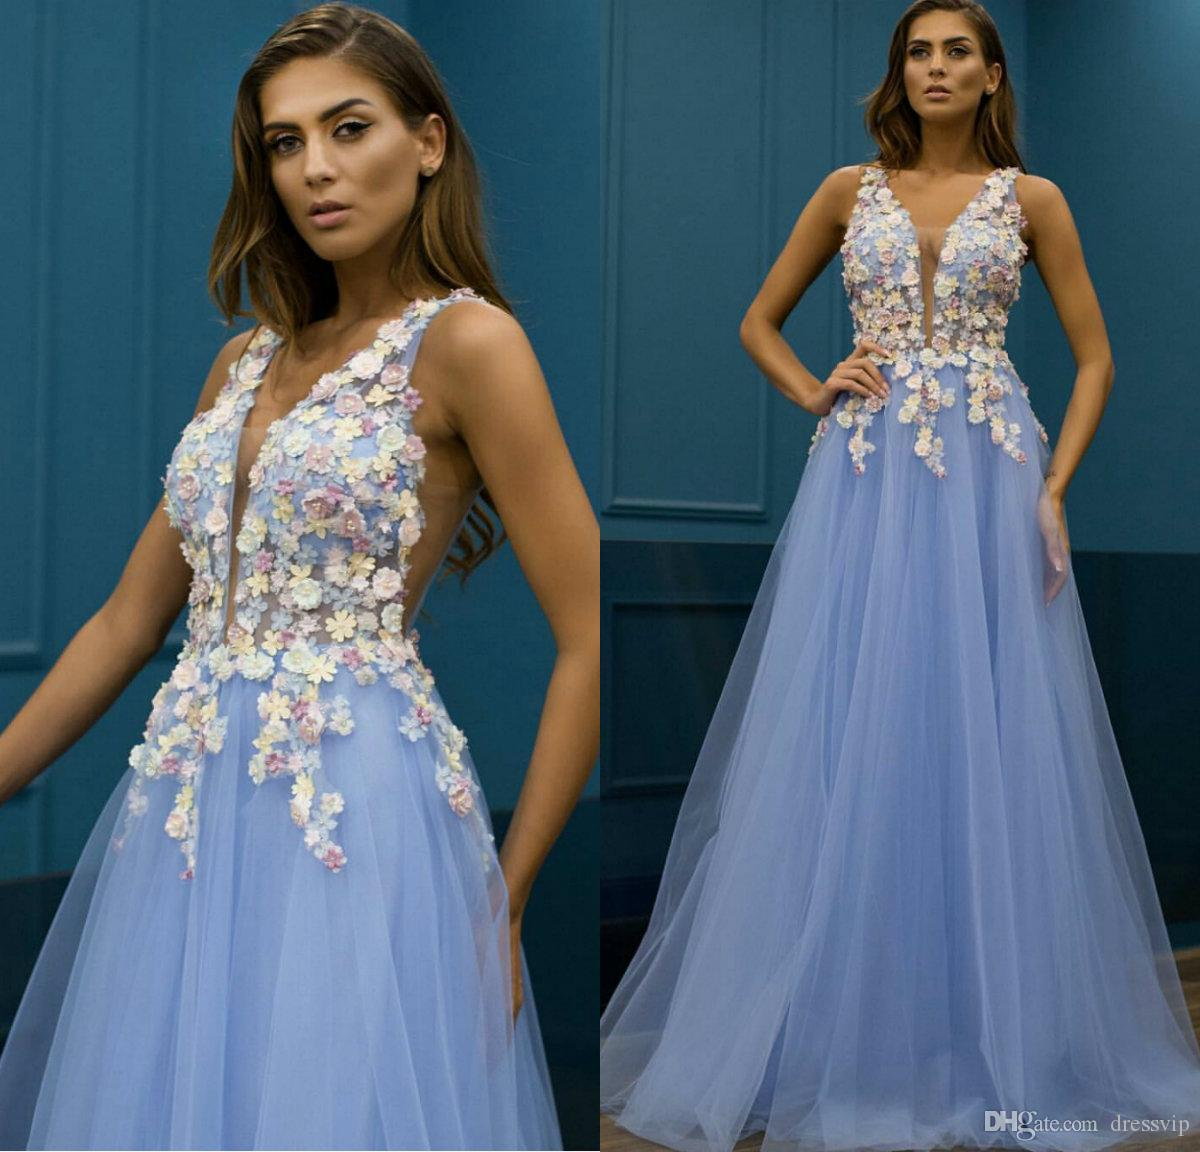 f22f8418007f 2019 Light Blue A Line Prom Dresses V Neck 3D Floral Appliqued Floor Length  Cheap Evening Gowns Custom Made Formal Party Dress Guest Prom Short Dresses  ...